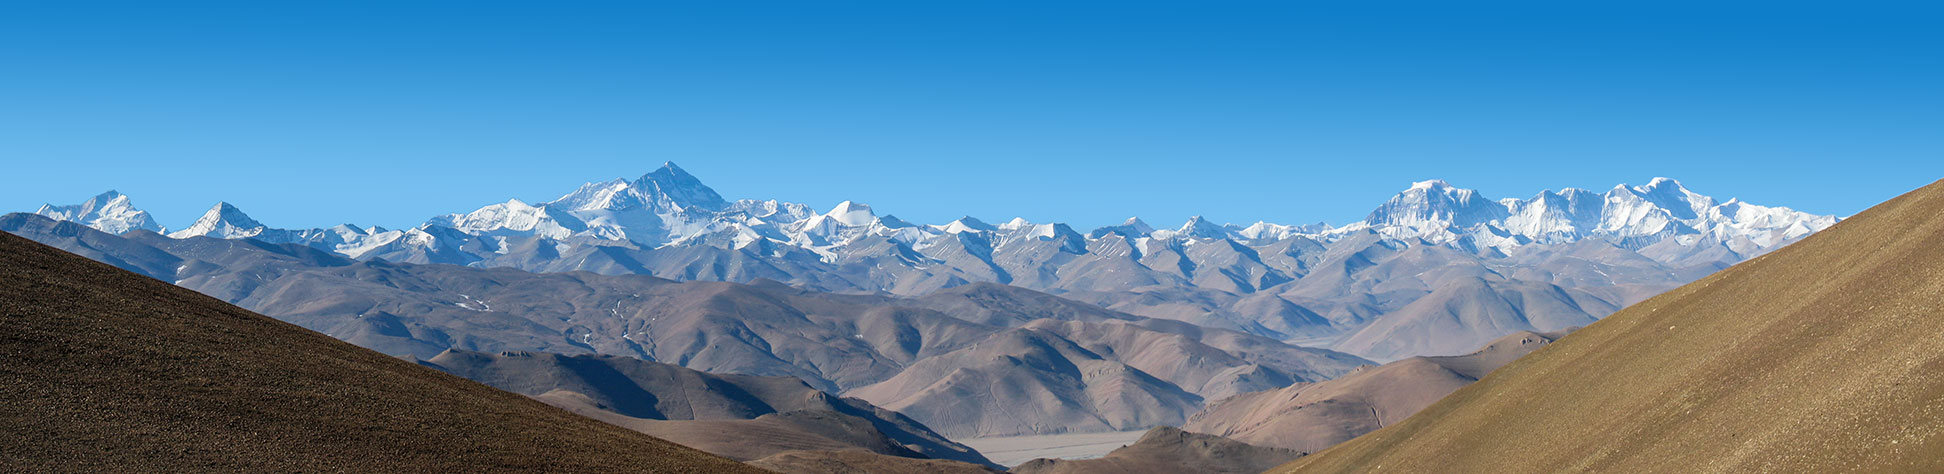 Panoramic view of the Himalayas with Mount Everest